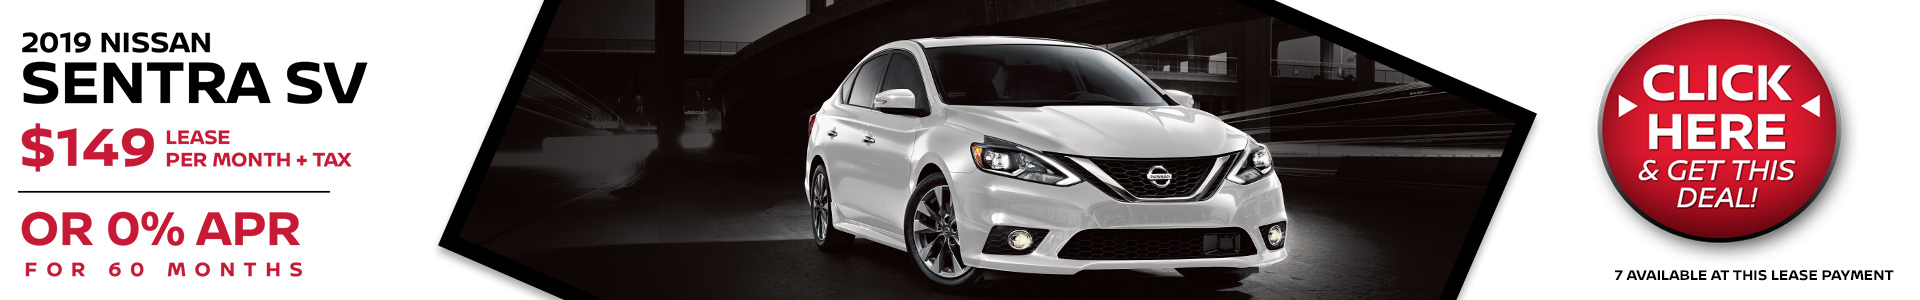 Mossy Nissan - Nissan Sentra $149 Lease